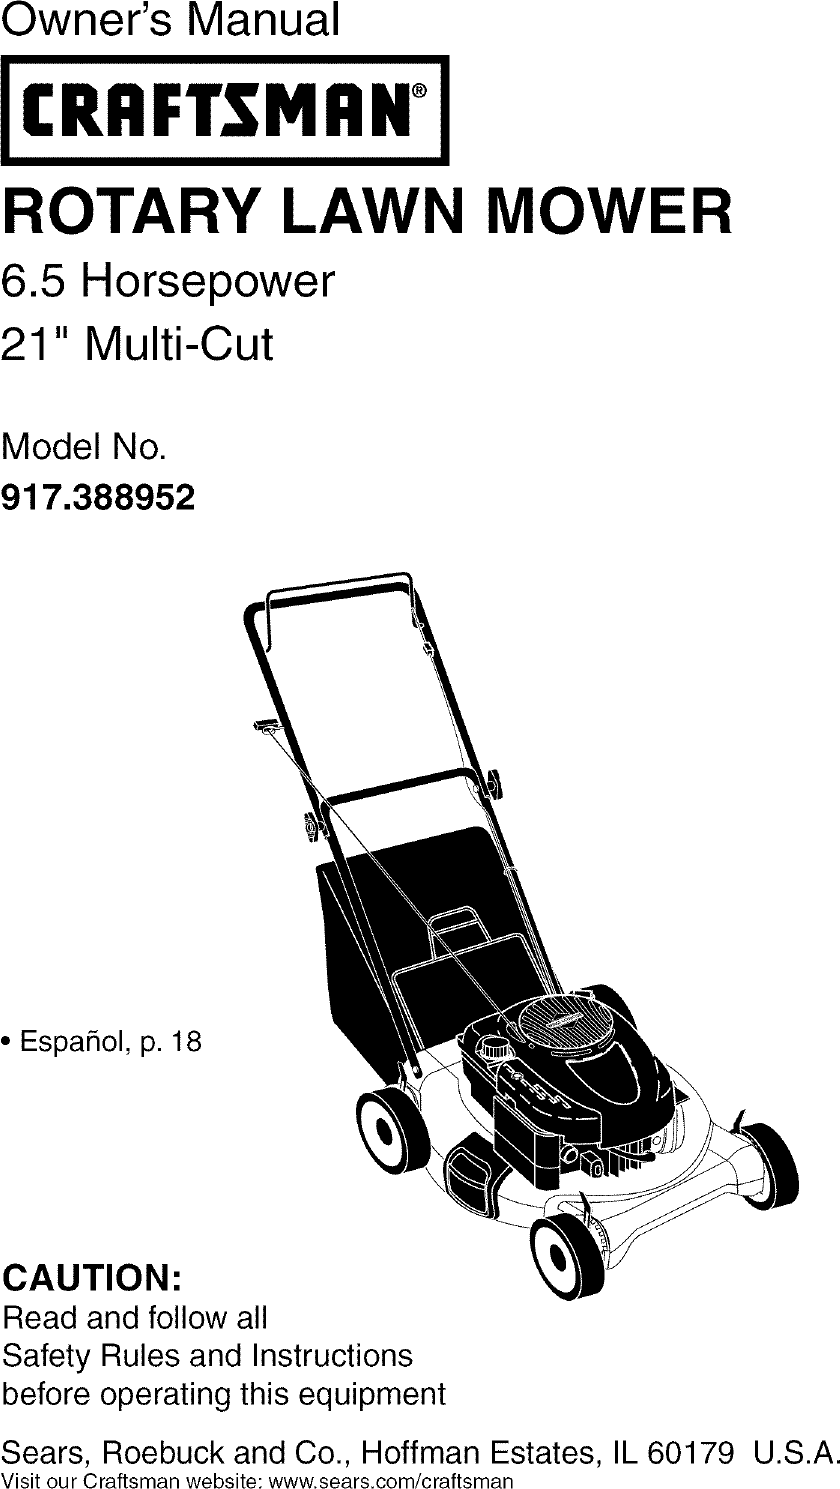 Craftsman 917388952 User Manual ROTARY MOWER Manuals And